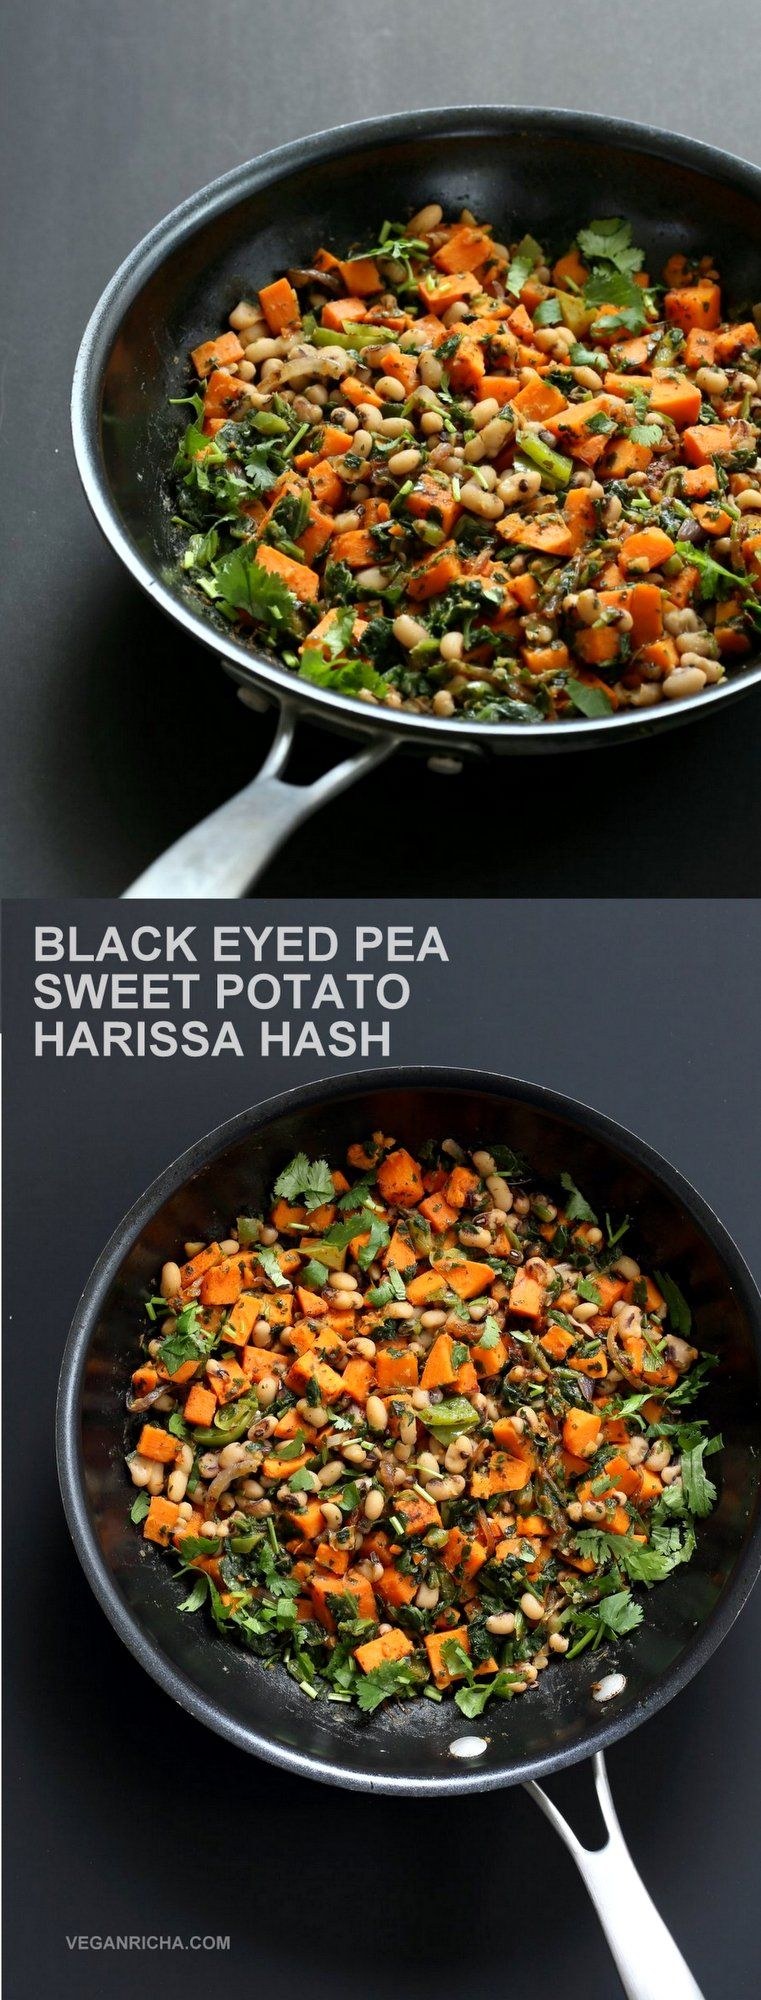 Black Eyed Peas And Sweet Potato Hash